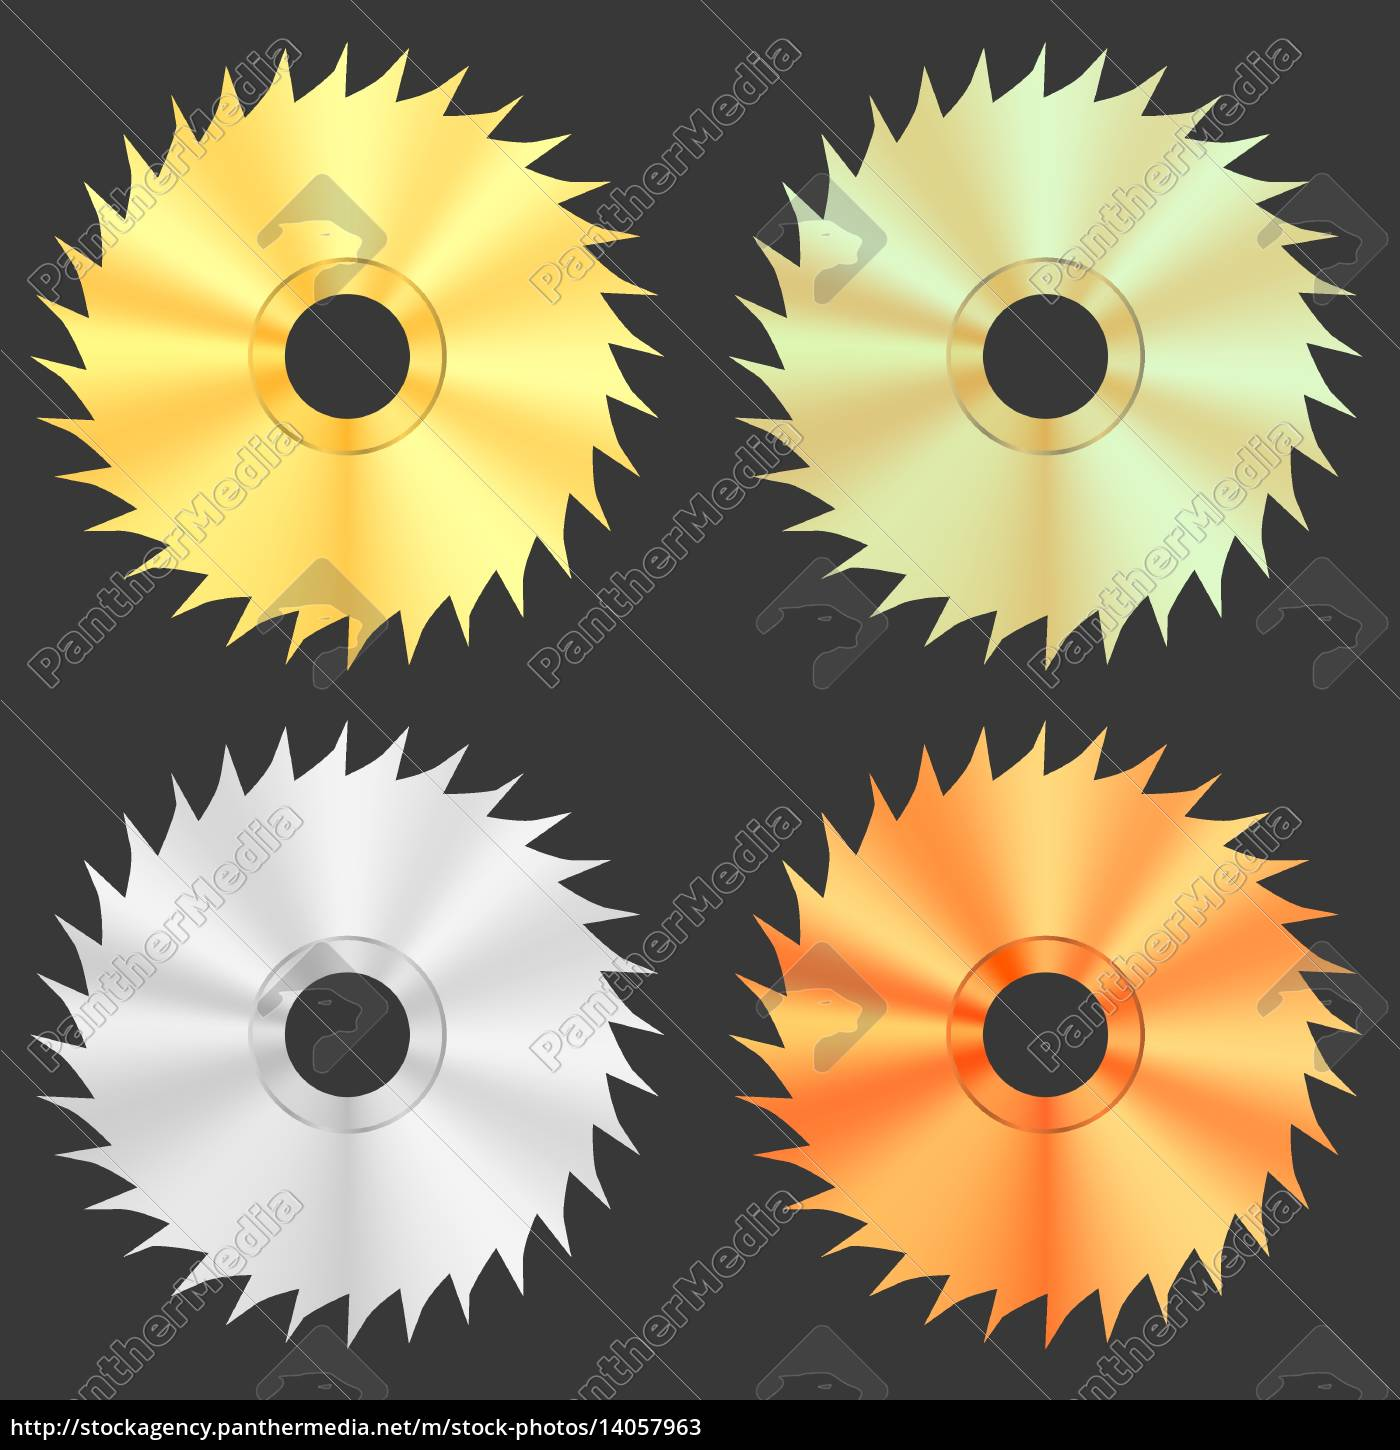 circular, saw, discs, isolated, on, dark - 14057963